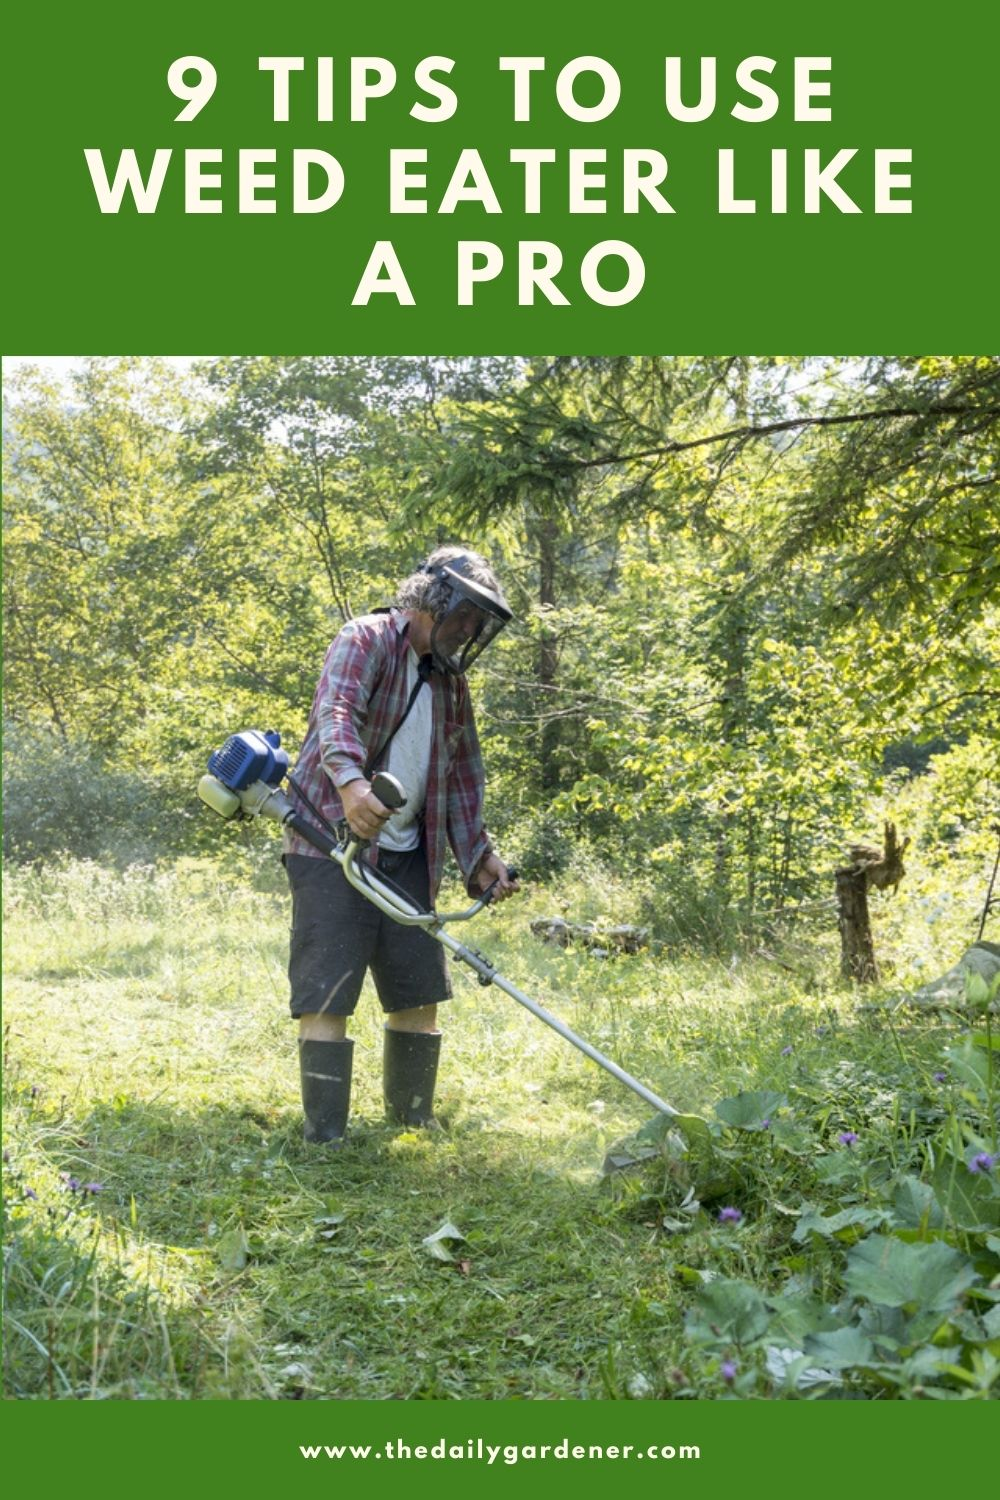 9 Tips to Use Weed Eater Like a Pro 2